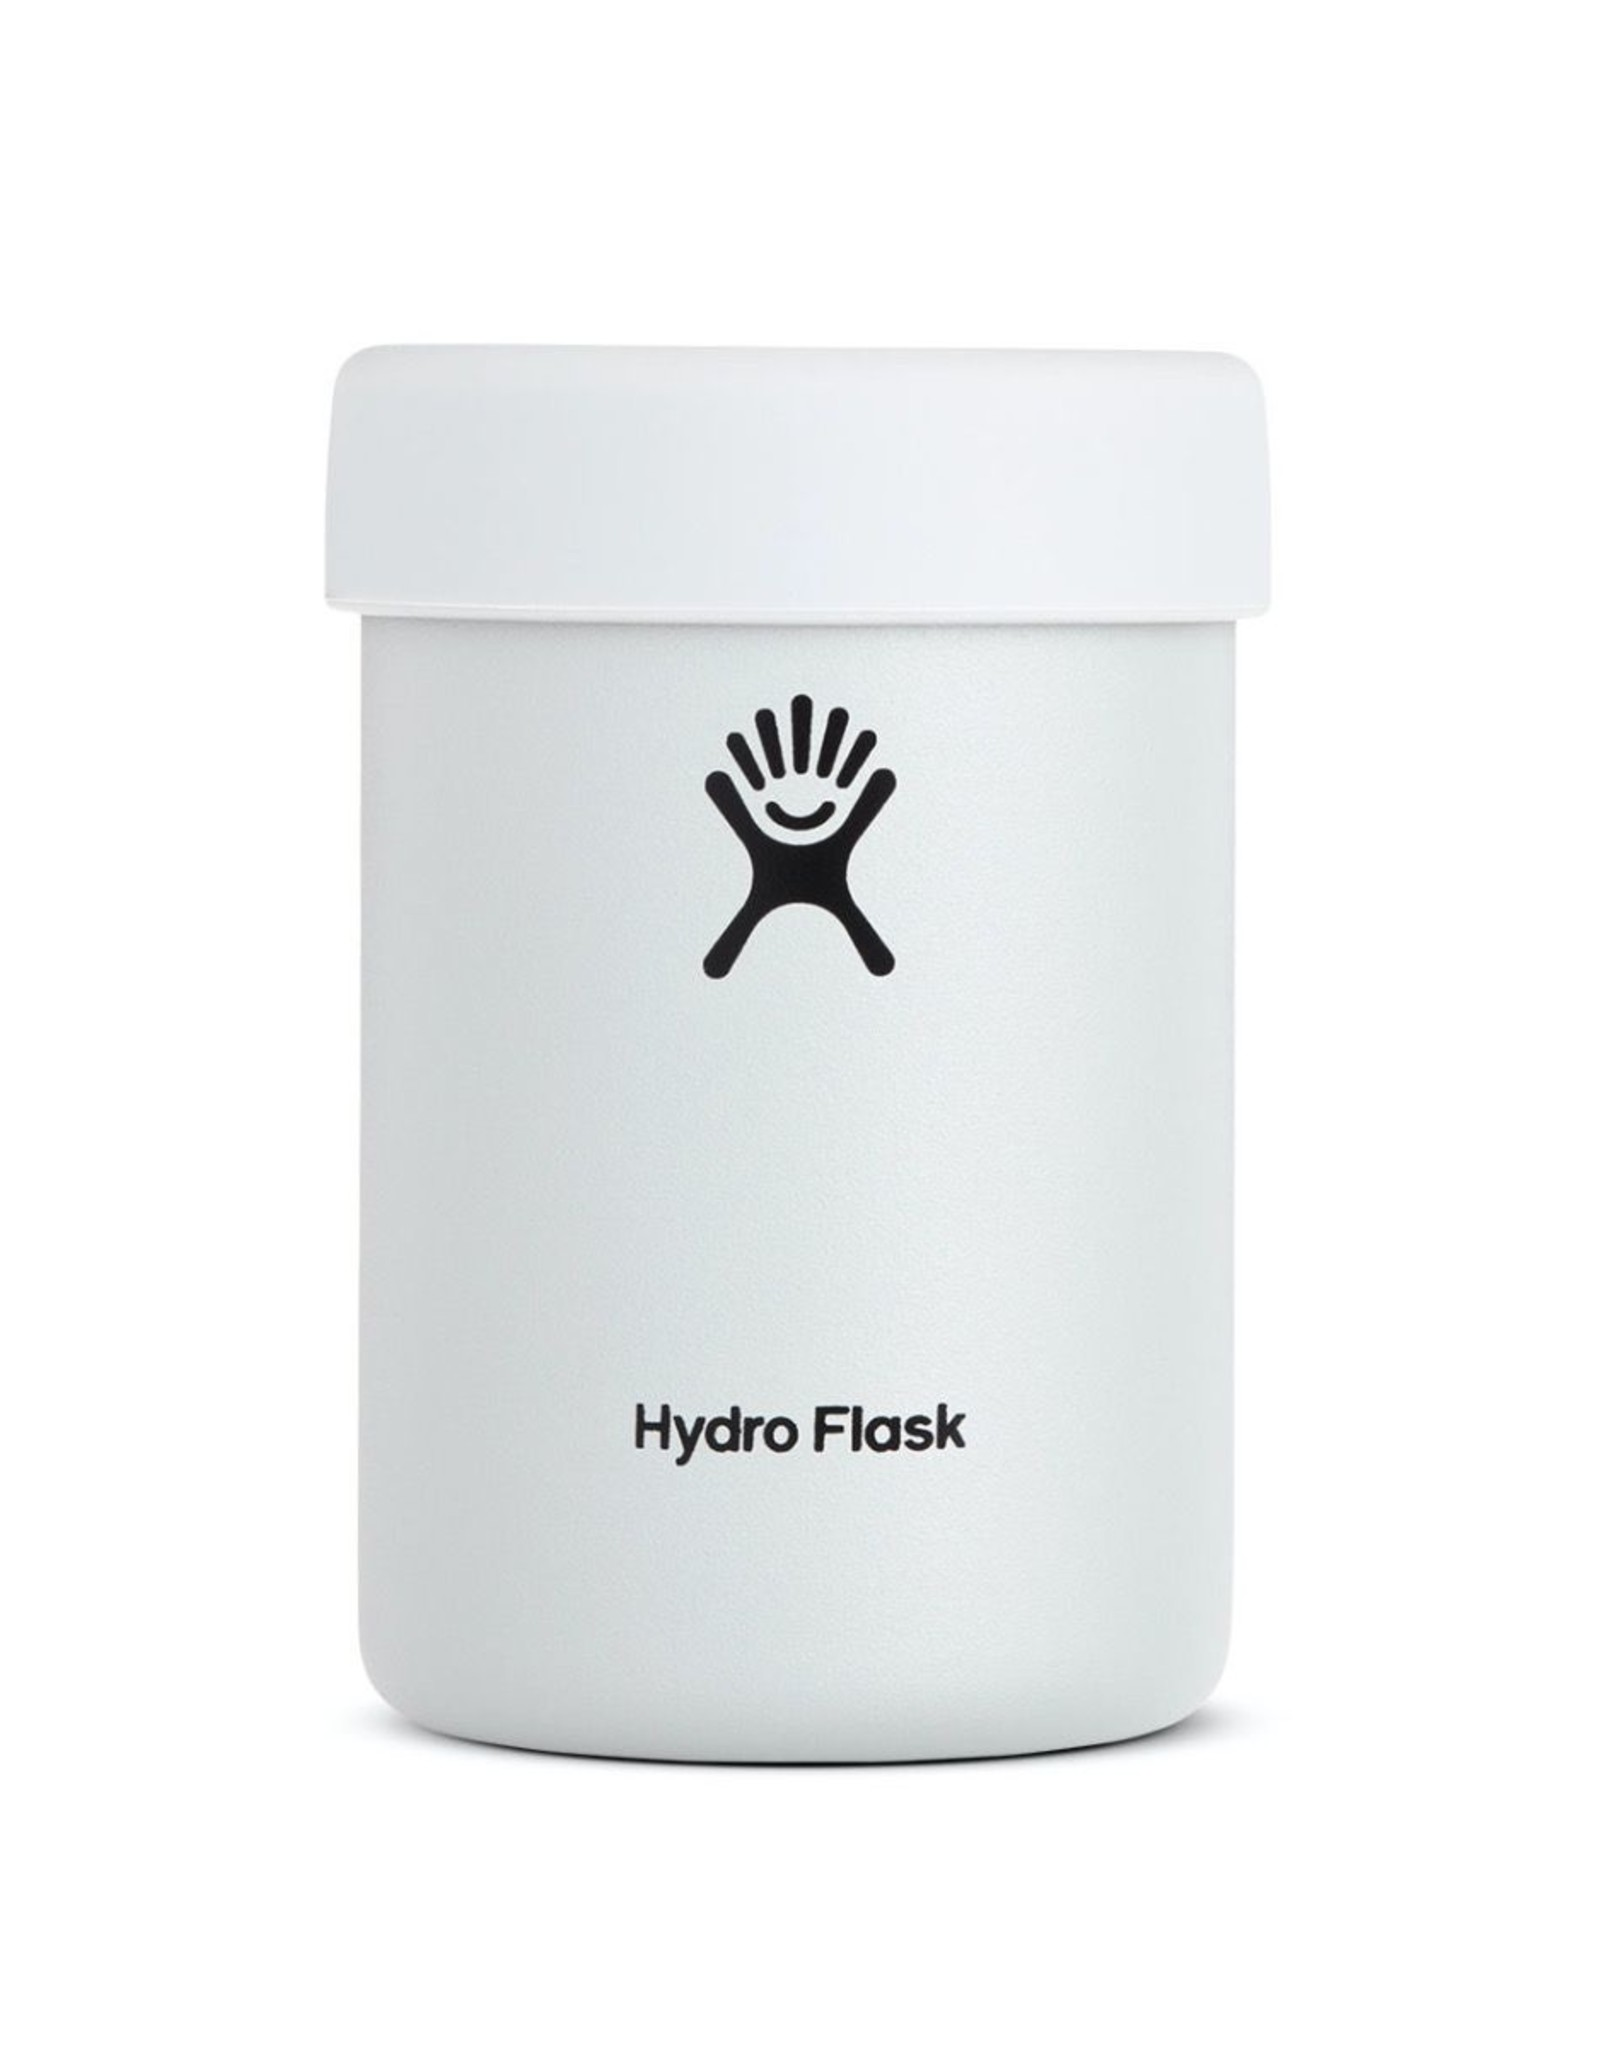 Hydroflask HYDROFLASK 12 OZ COOLER CUP